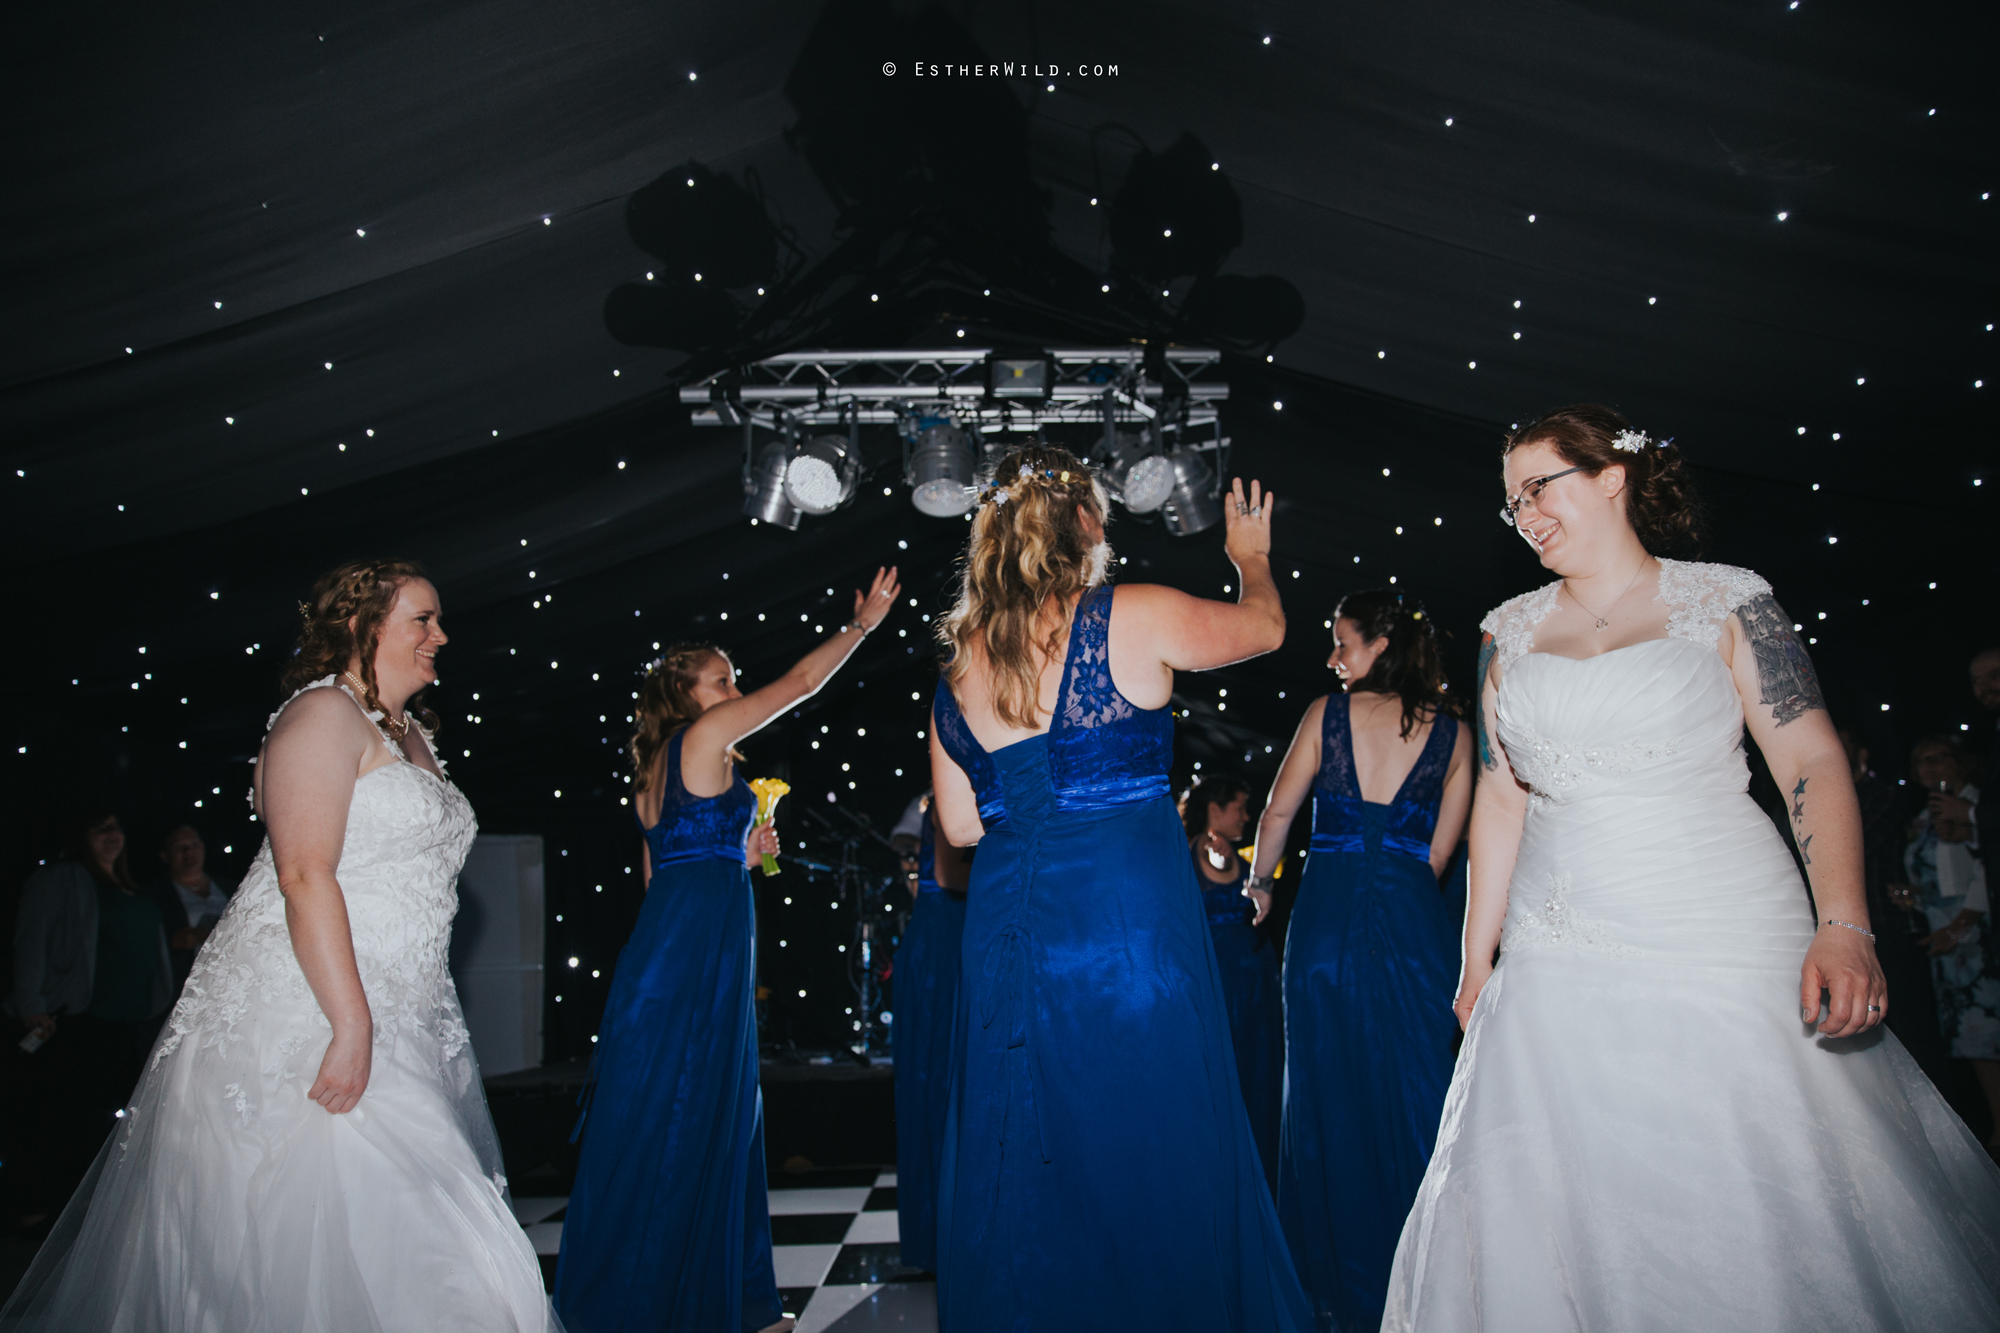 Old_Hall_Ely_Wedding_Esther_Wild_Photographer_IMG_2944.jpg